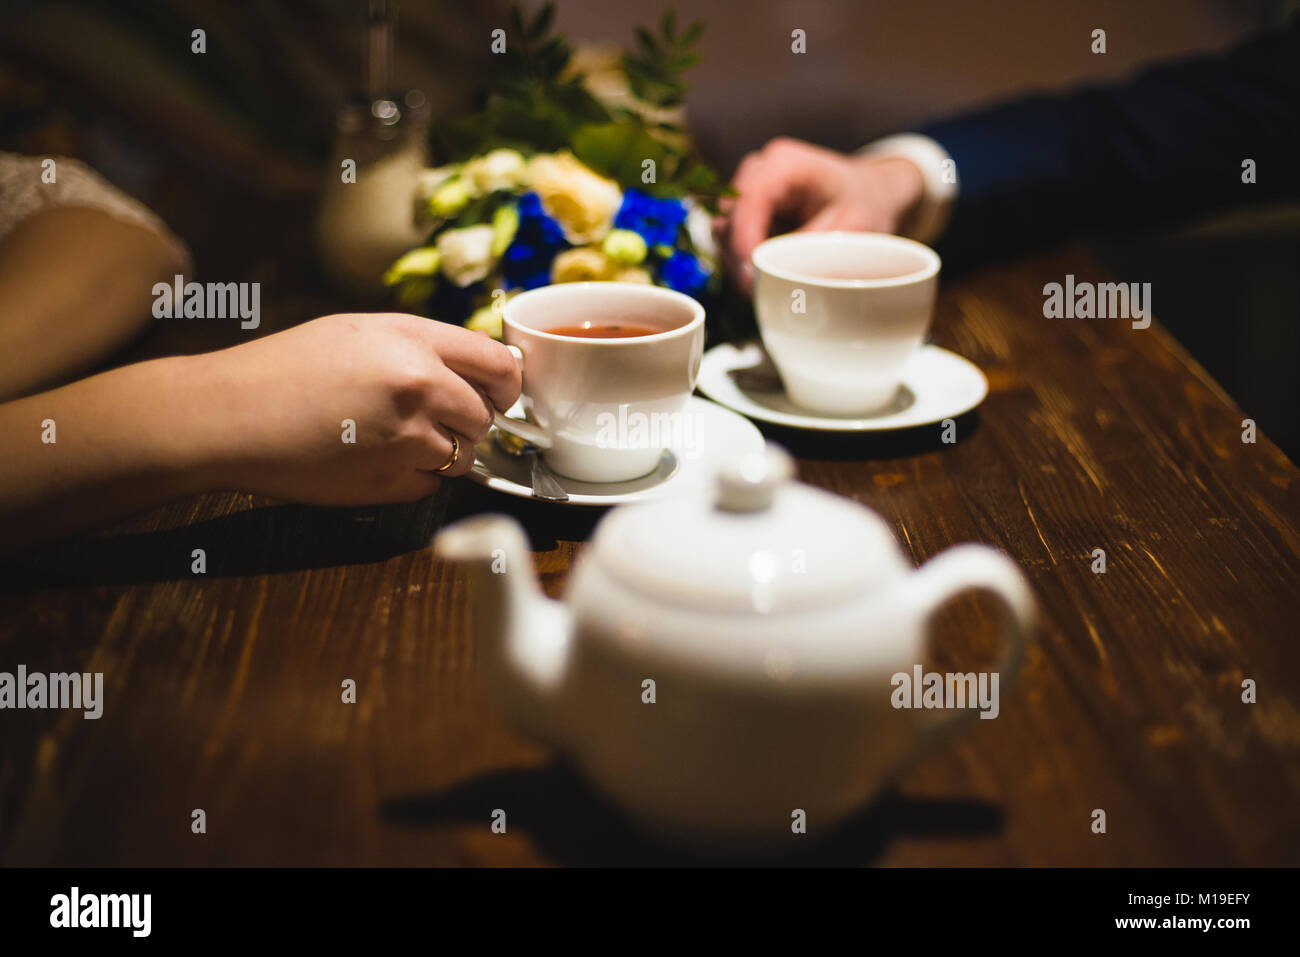 white cups in the hands with a shallow depth of field - Stock Image